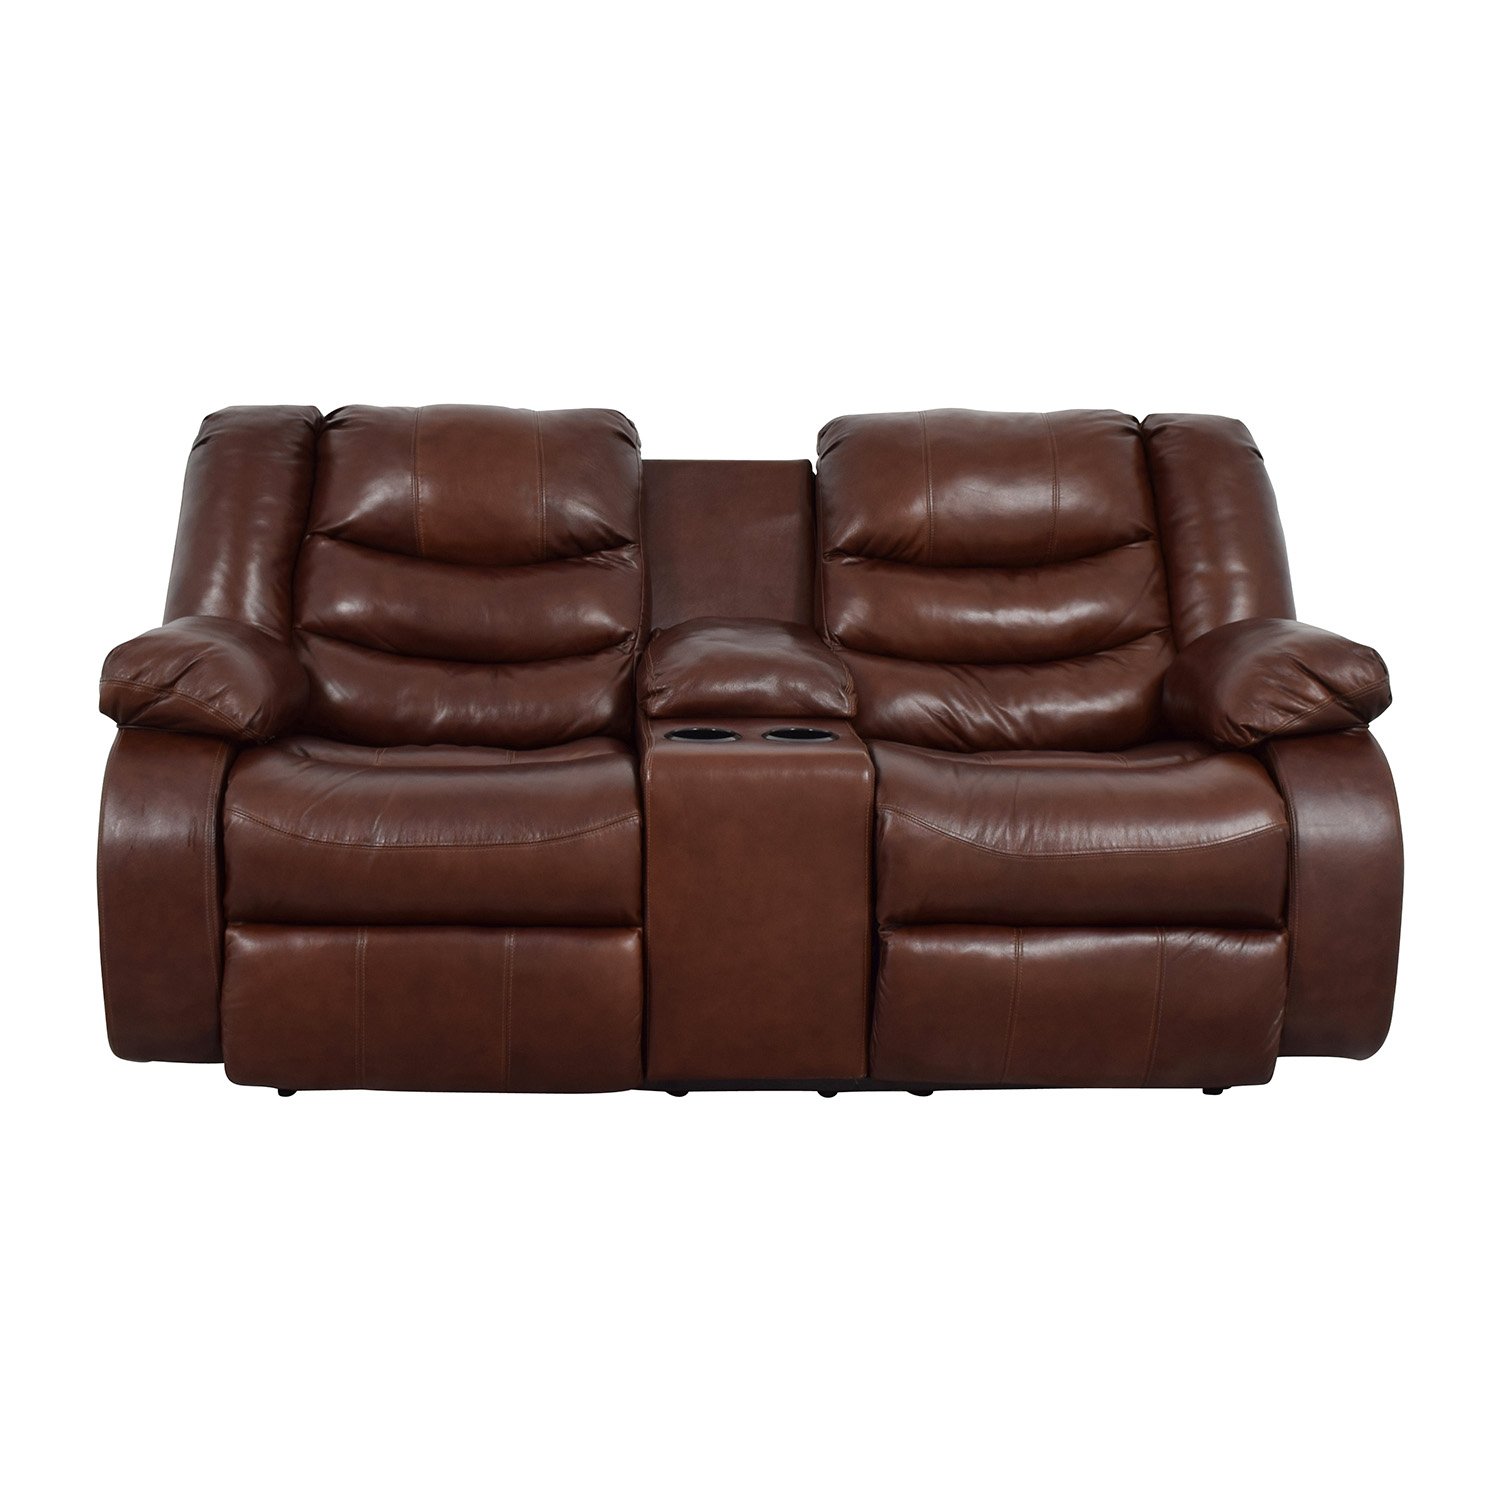 Brown Leather Sectional Recliner Sofa Teachfamilies Org